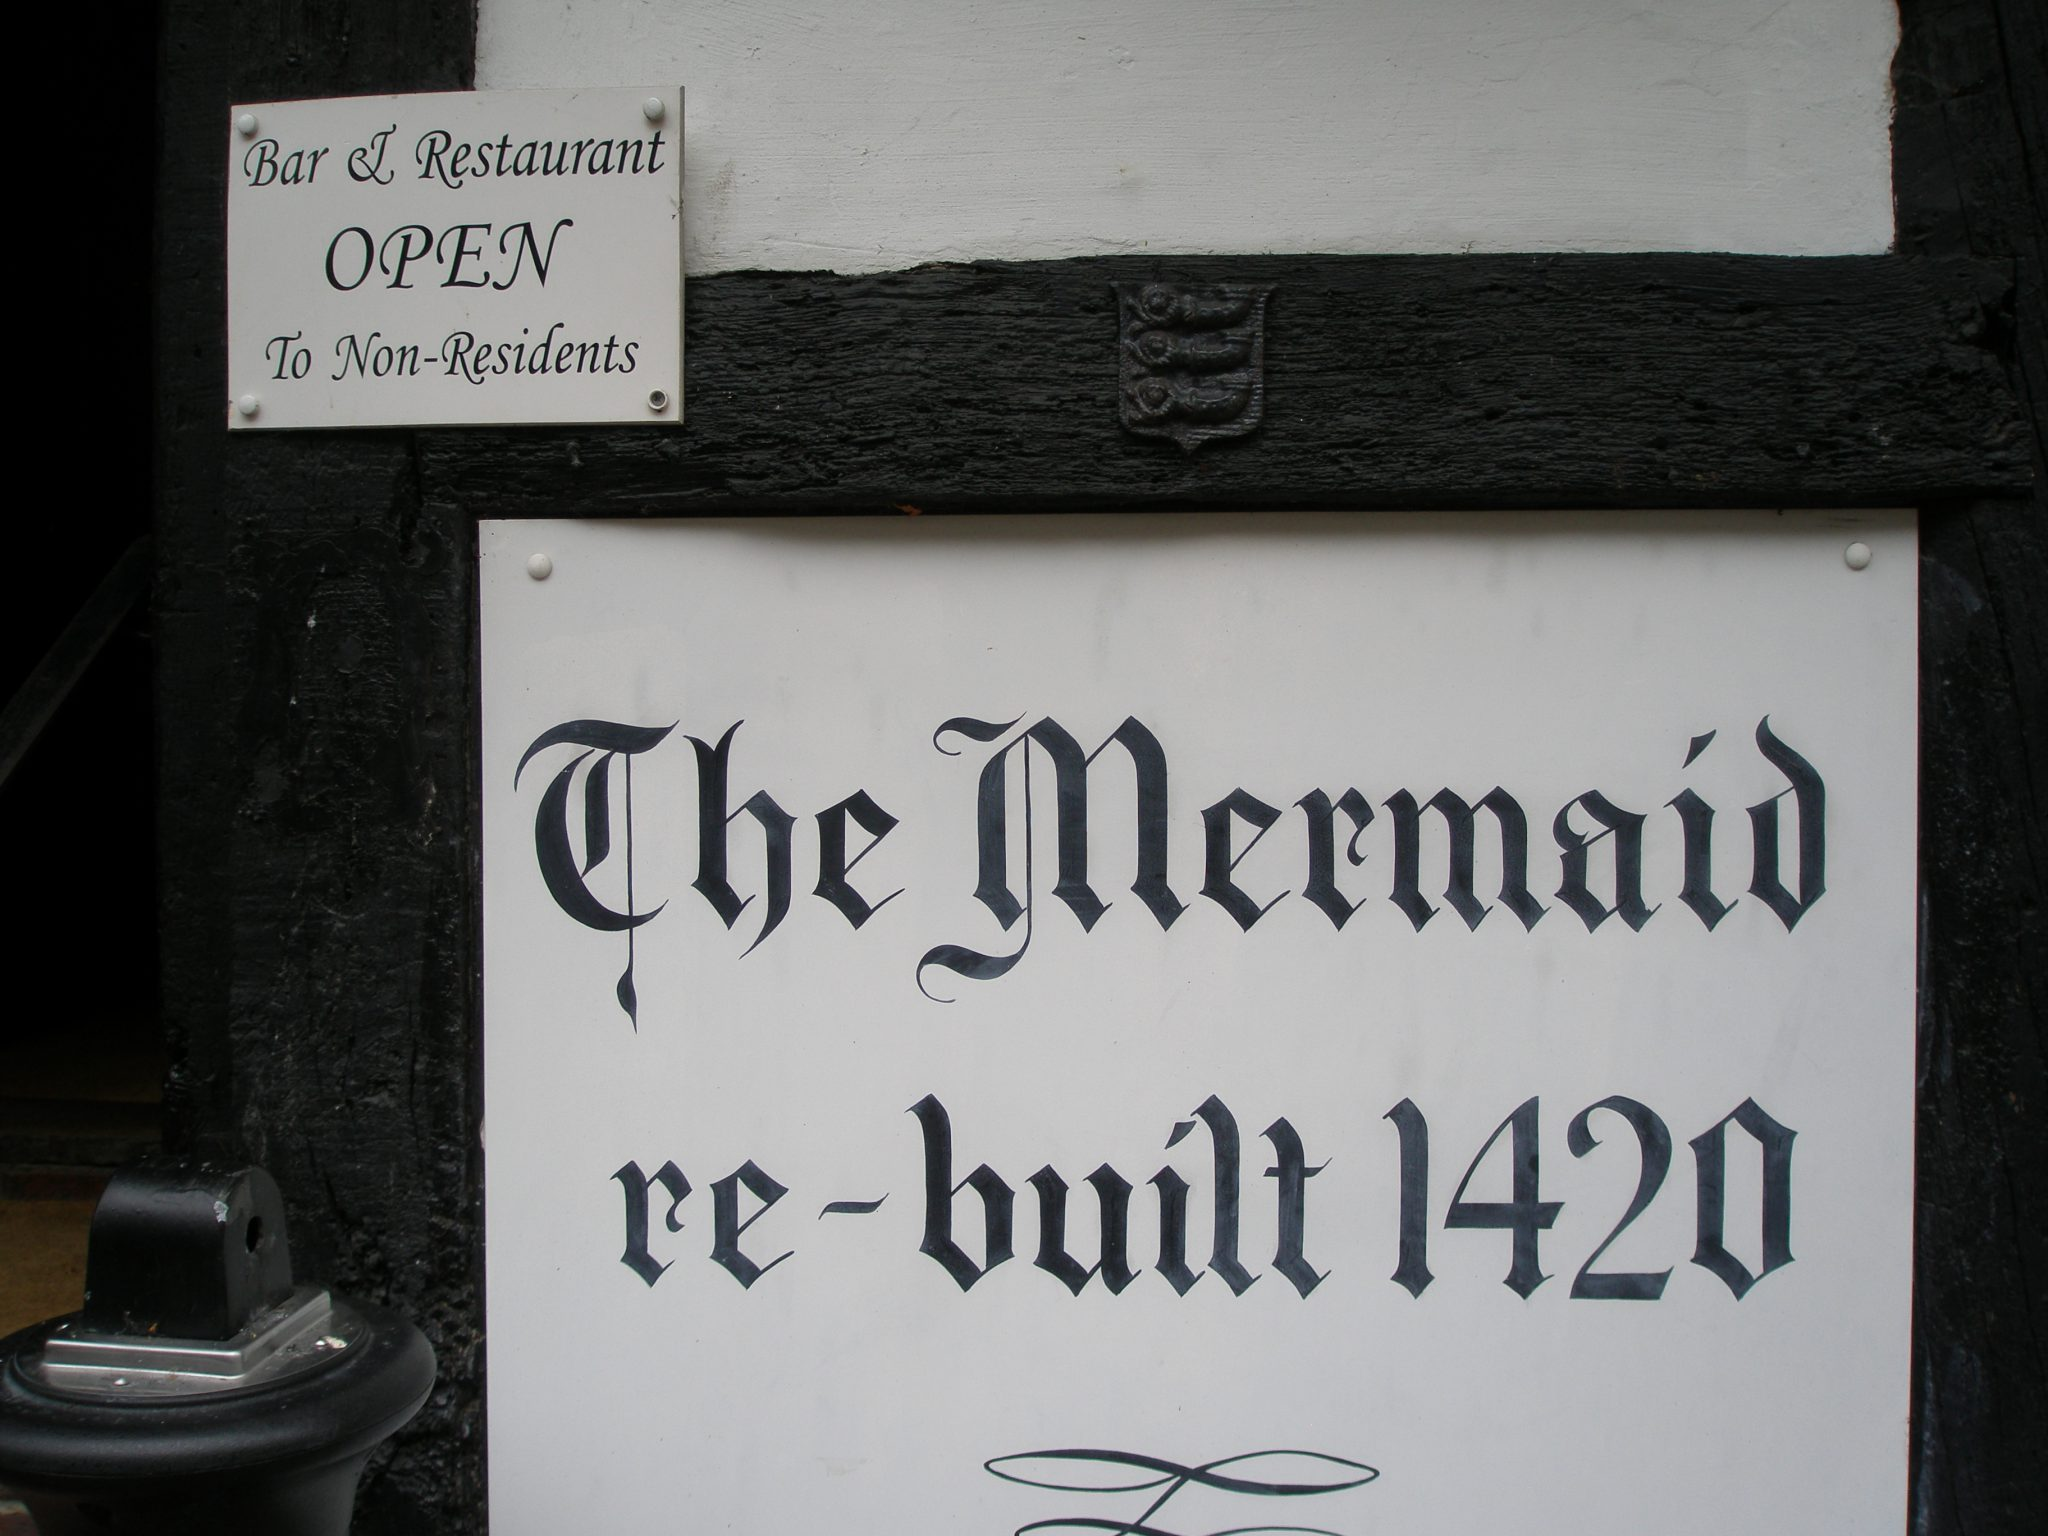 The Mermaid Inn, which was rebuilt in 1420, stands on cellars that were constructed in 1156. During medieval times, the Inn brewed its own ale, and charged a penny a night for lodging.